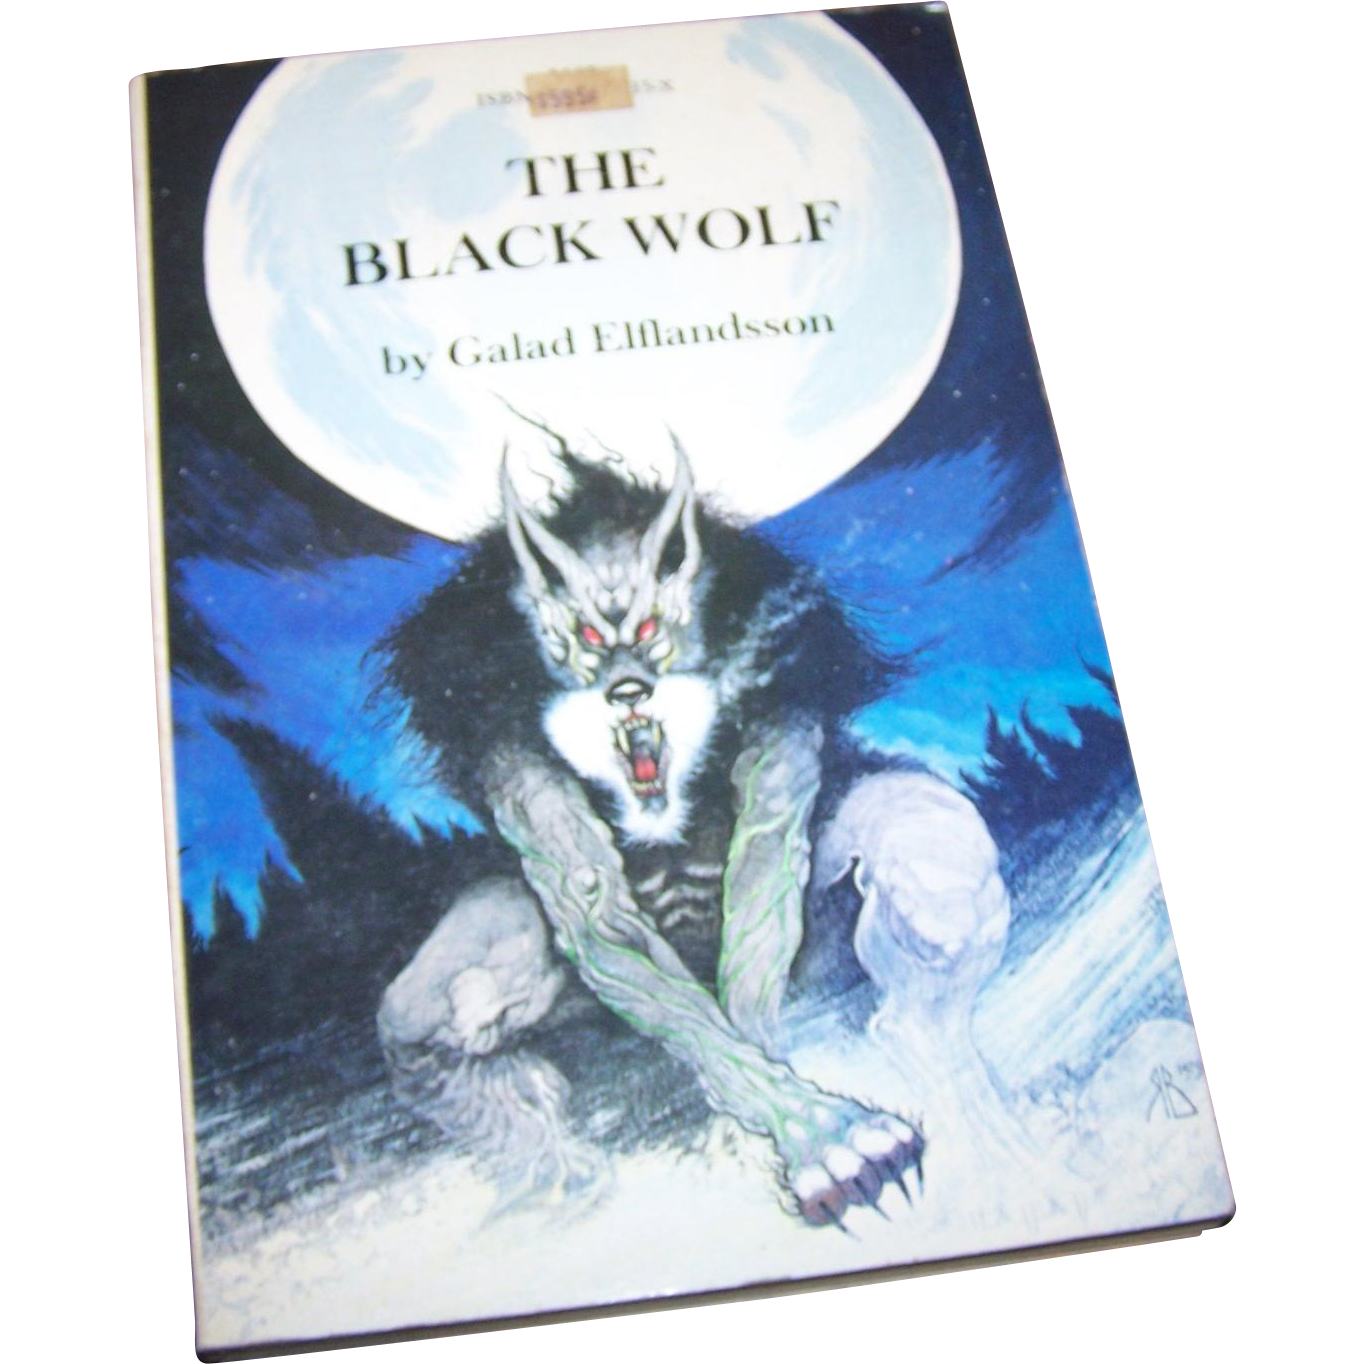 Soft Cover Book The Black Wolf  by Galad Elflandsson Centaur Books 1980 Author Signed